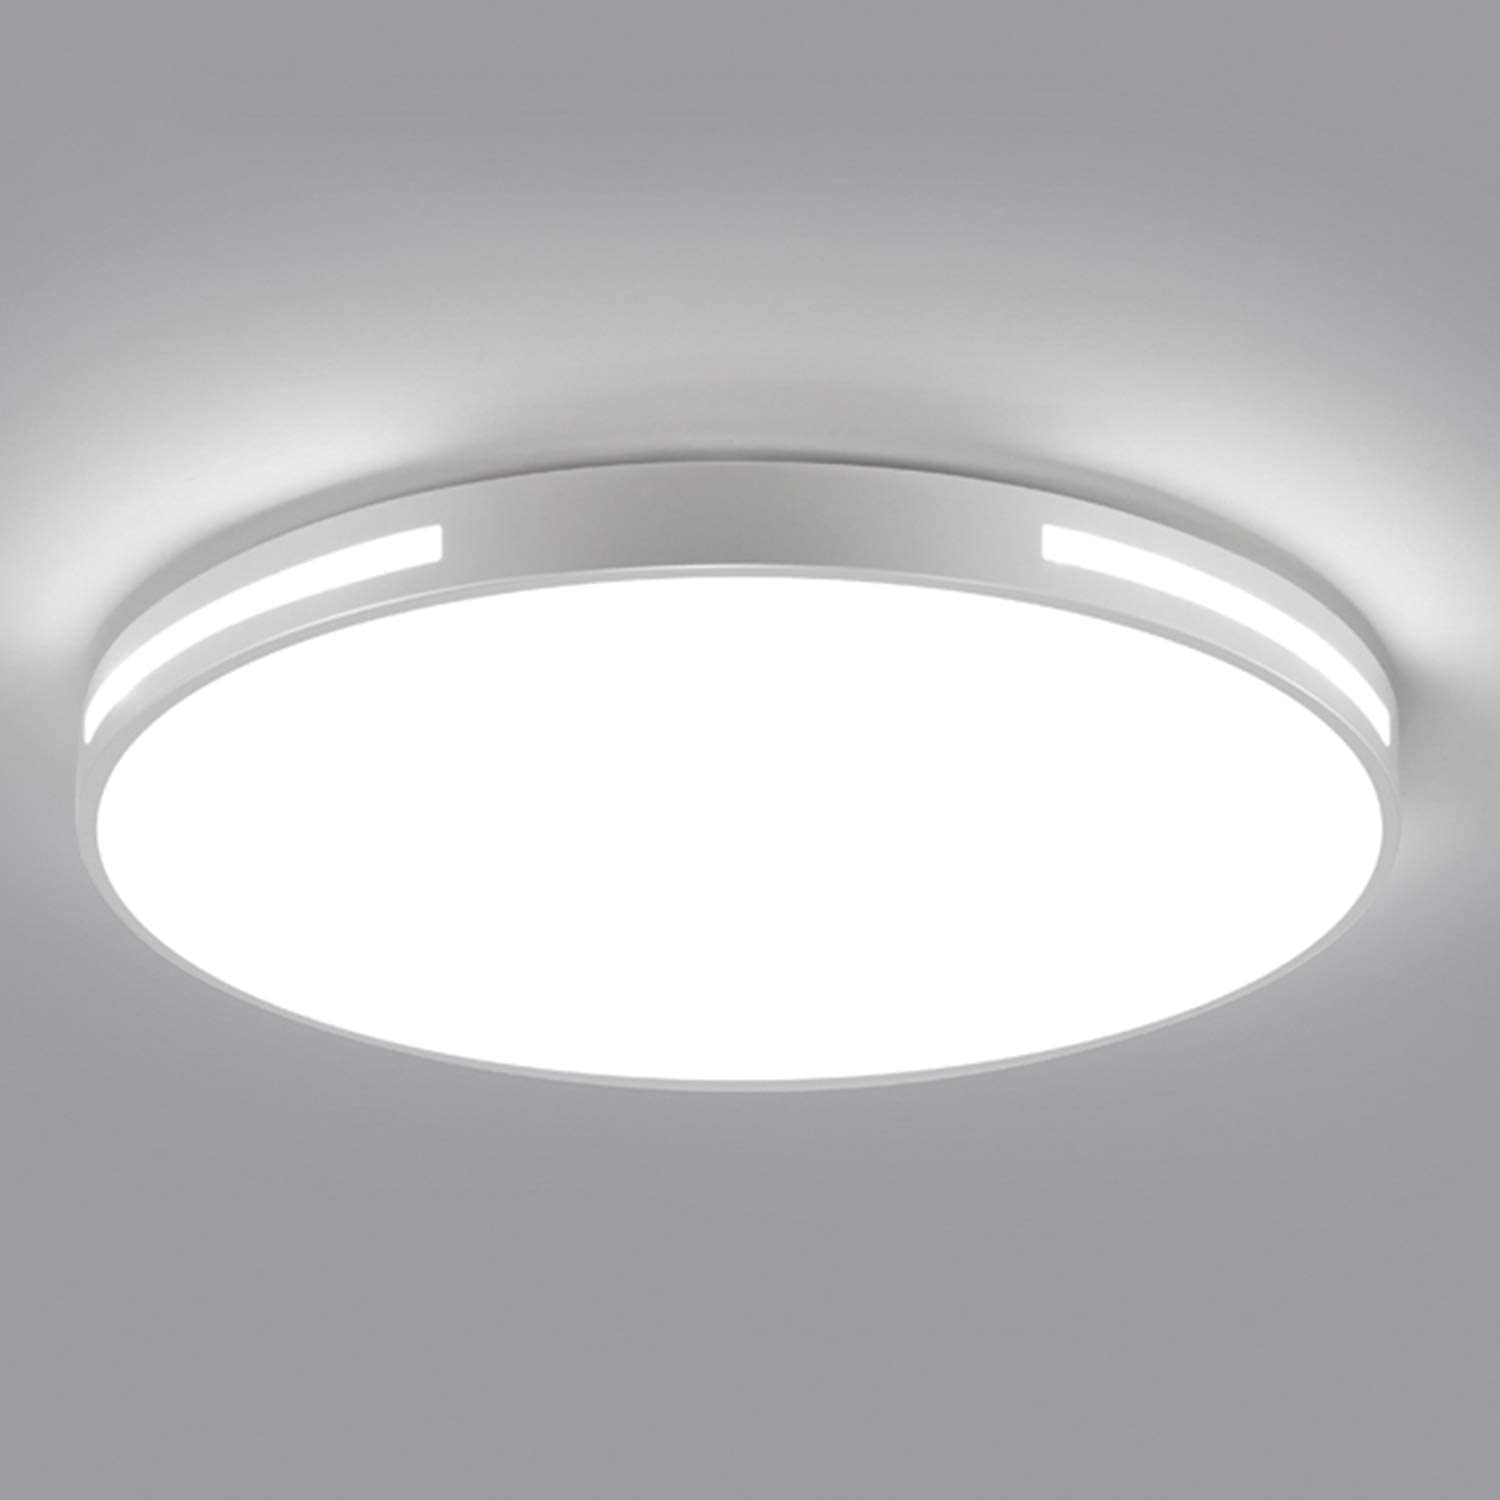 Ganeed Led Flush Mount Ceiling Light 12 Inch Led Ceiling Lighting Fixture Round Hollow 18w 6500k Cool White Ceiling Lamp For Dining Room Hallway Living Room Kitchen Bedroom Porch White Amazon Com